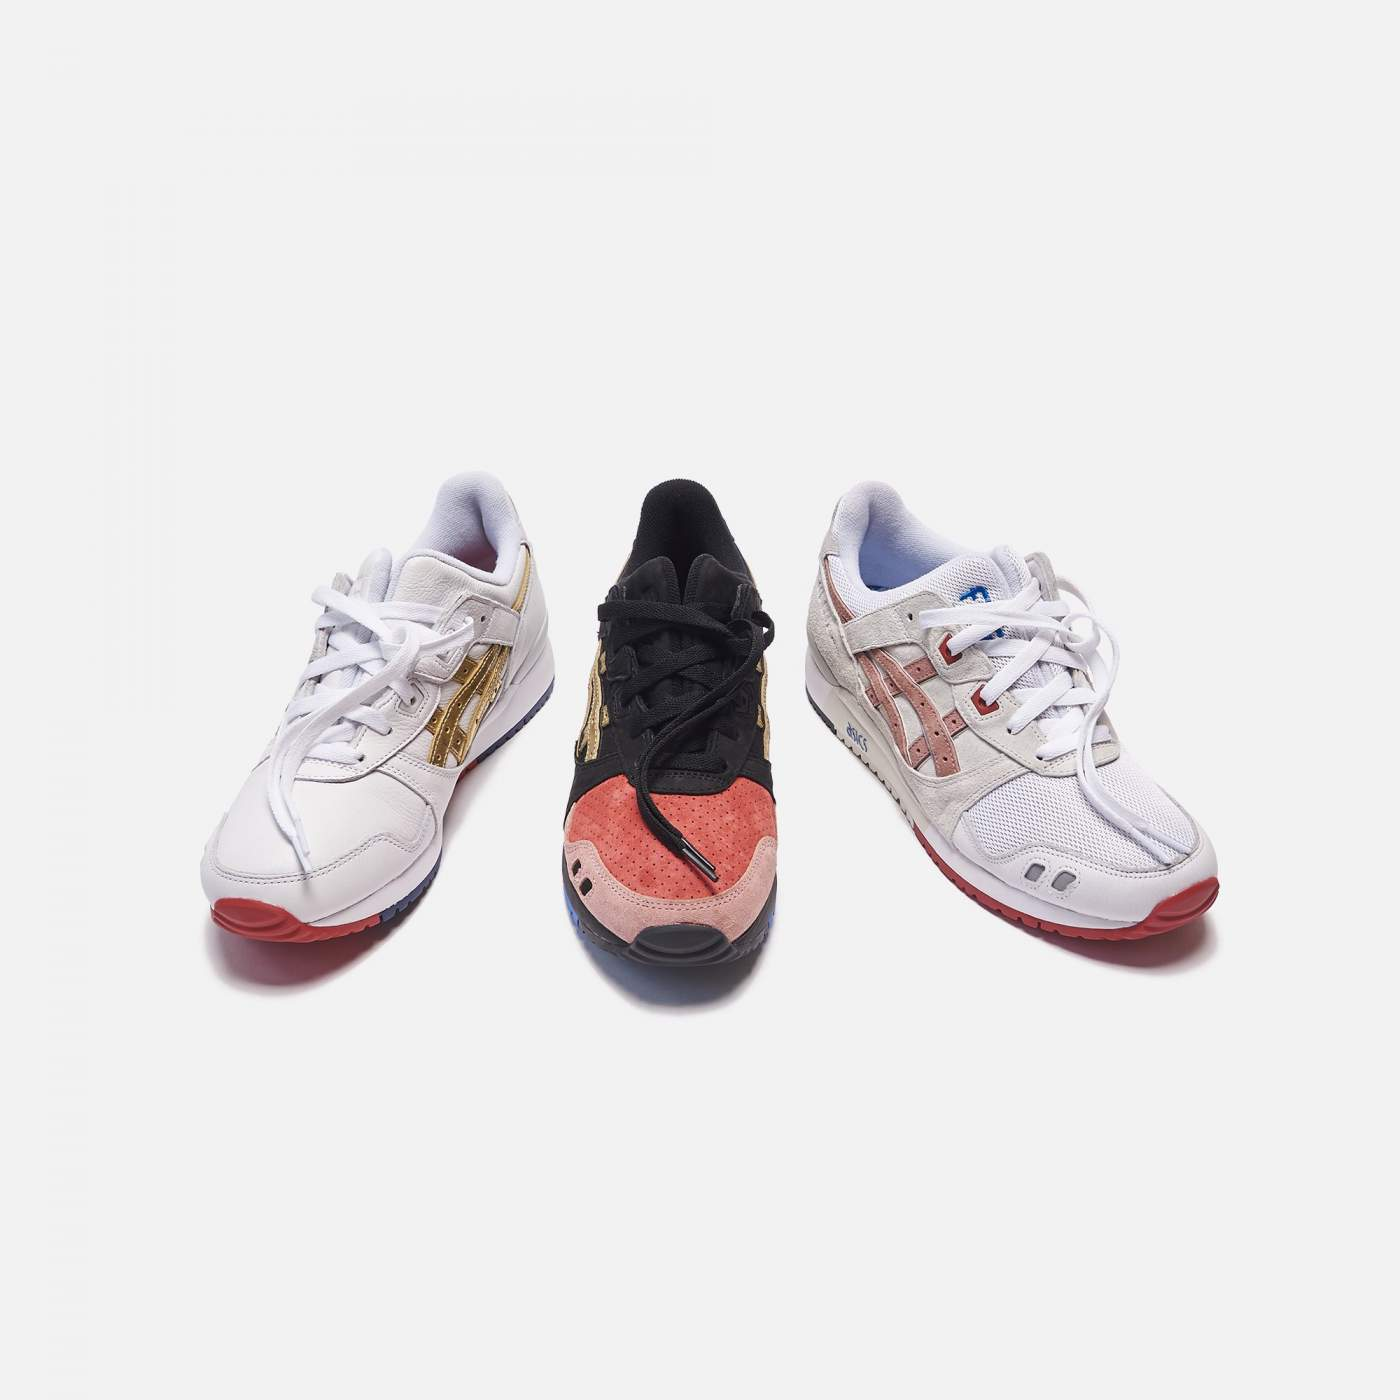 Kith-Asics-Gel-Lyte-III-Tokyo-Hover-View